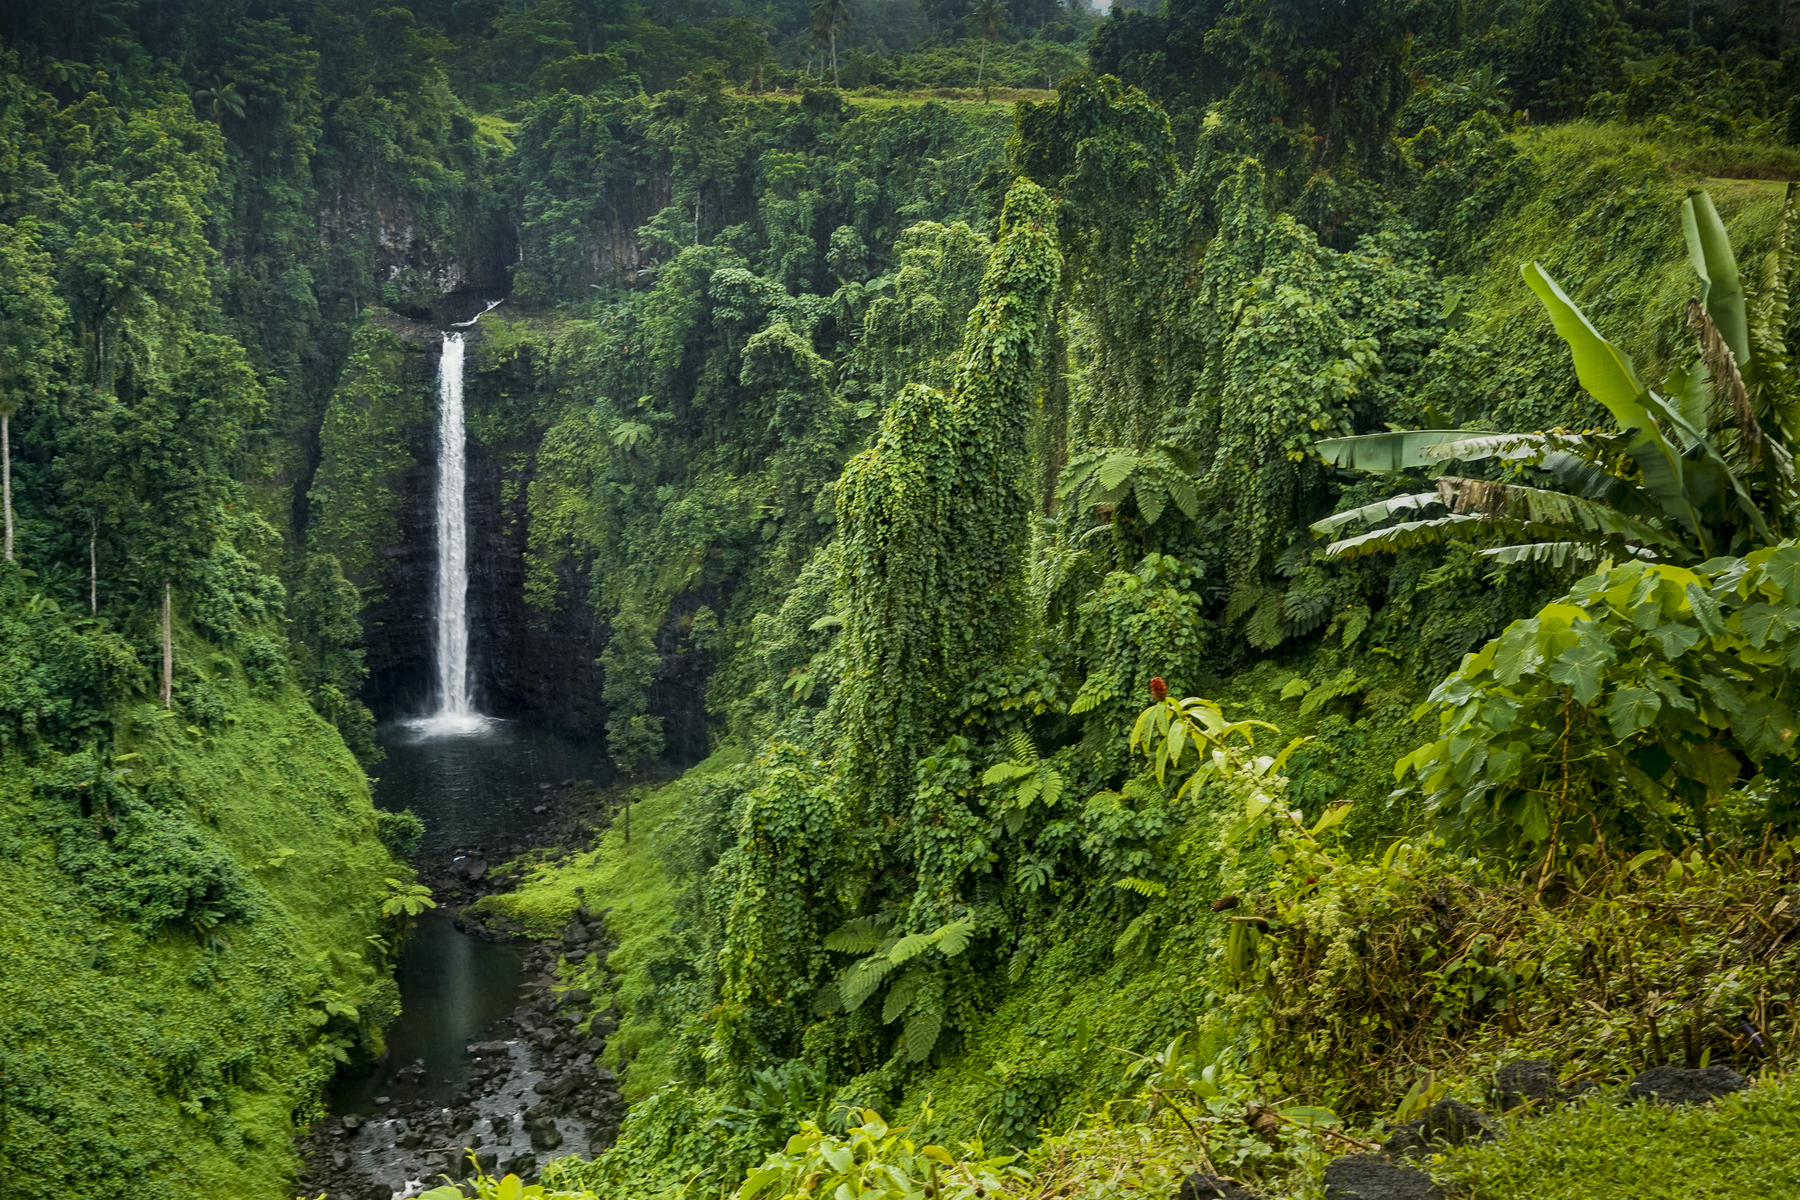 One of the many waterfalls to be found when exploring Samoa